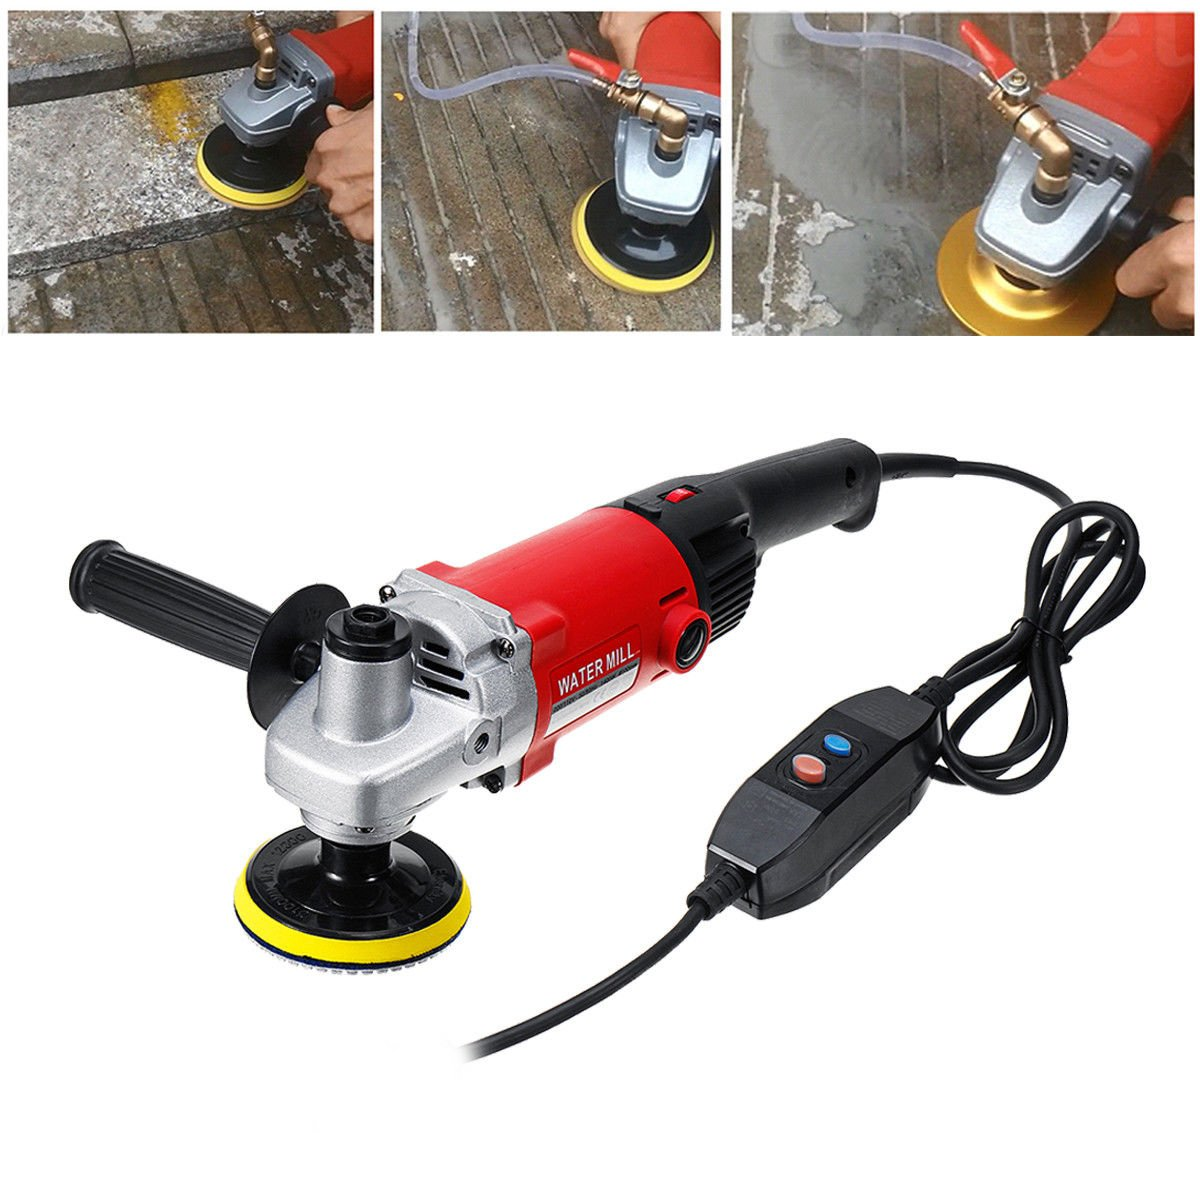 MOPHOTO 4-Inch Variable Speed Random Orbital Polisher Kit, Countertop Wet Sander Grinder w/Diamond Pads for Marble/Stone/Granite, USA Warehouse Shipment by MOPHOTO (Image #1)